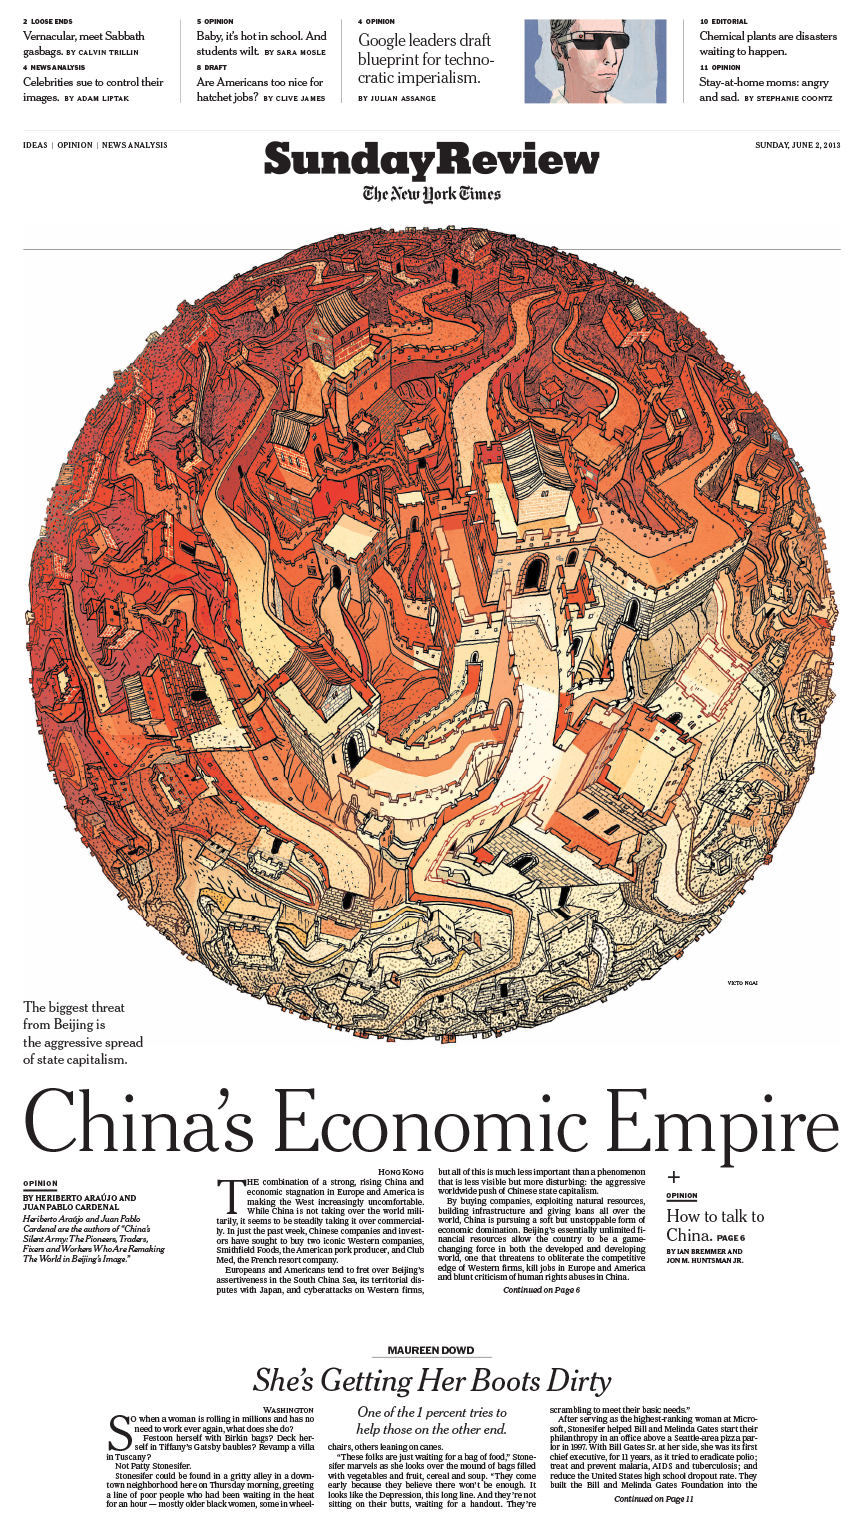 Sunday Review Cover: China's Economic Empire